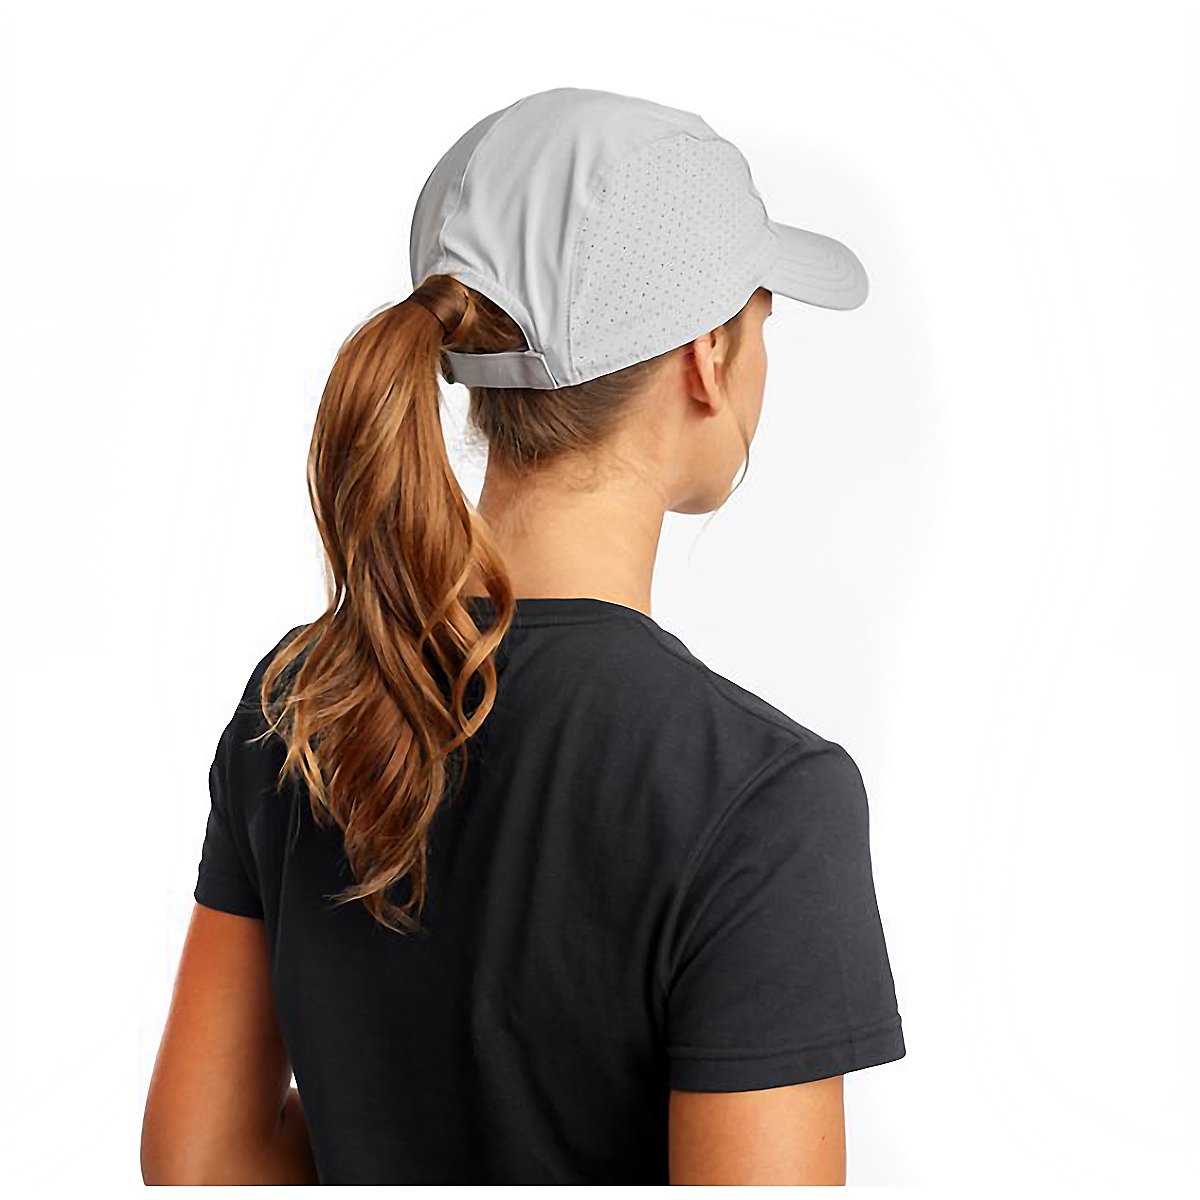 Saucony Outpace Hat - Color: Alloy, Alloy, large, image 2